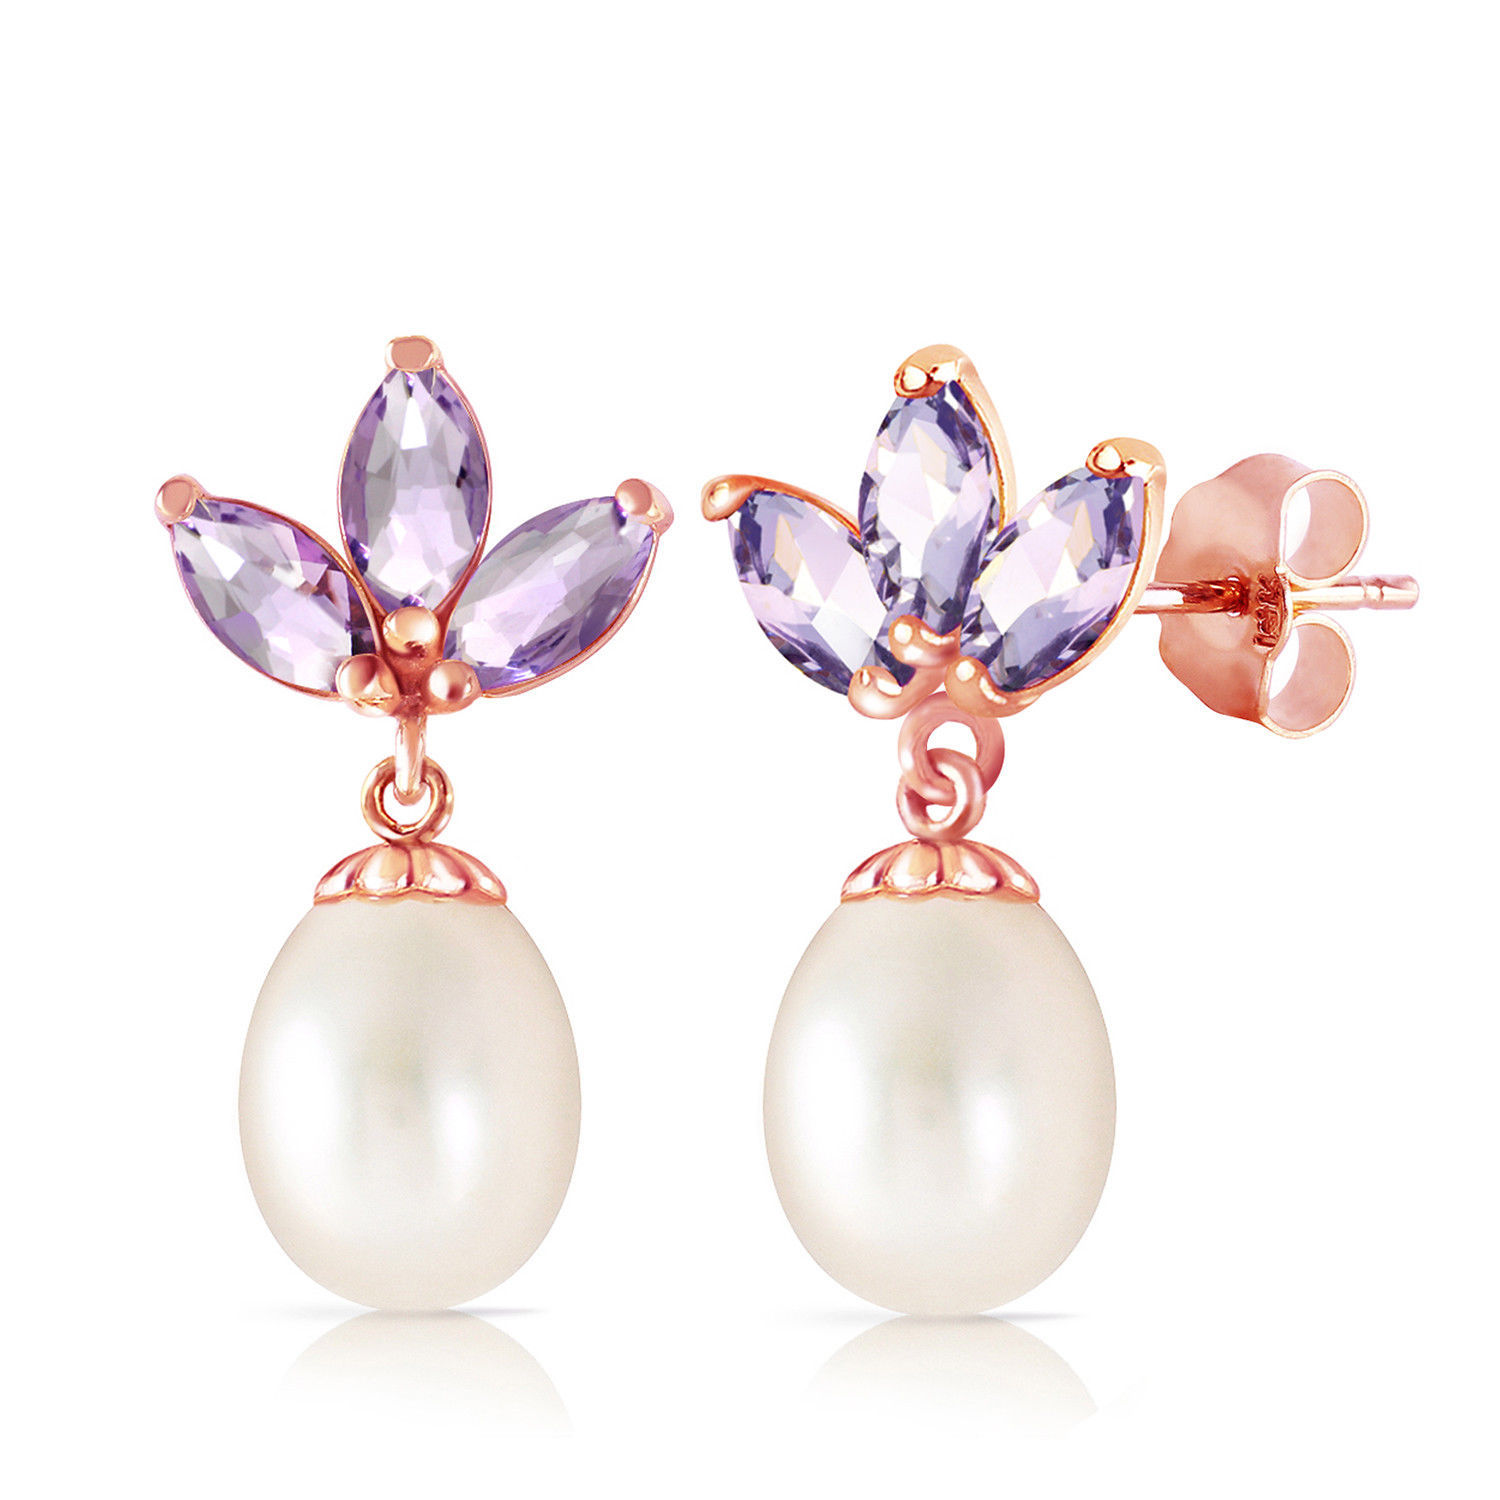 Primary image for 14K Solid Rose Gold Dangling Earrings with pearl & Tanzanite Fine Gemstone